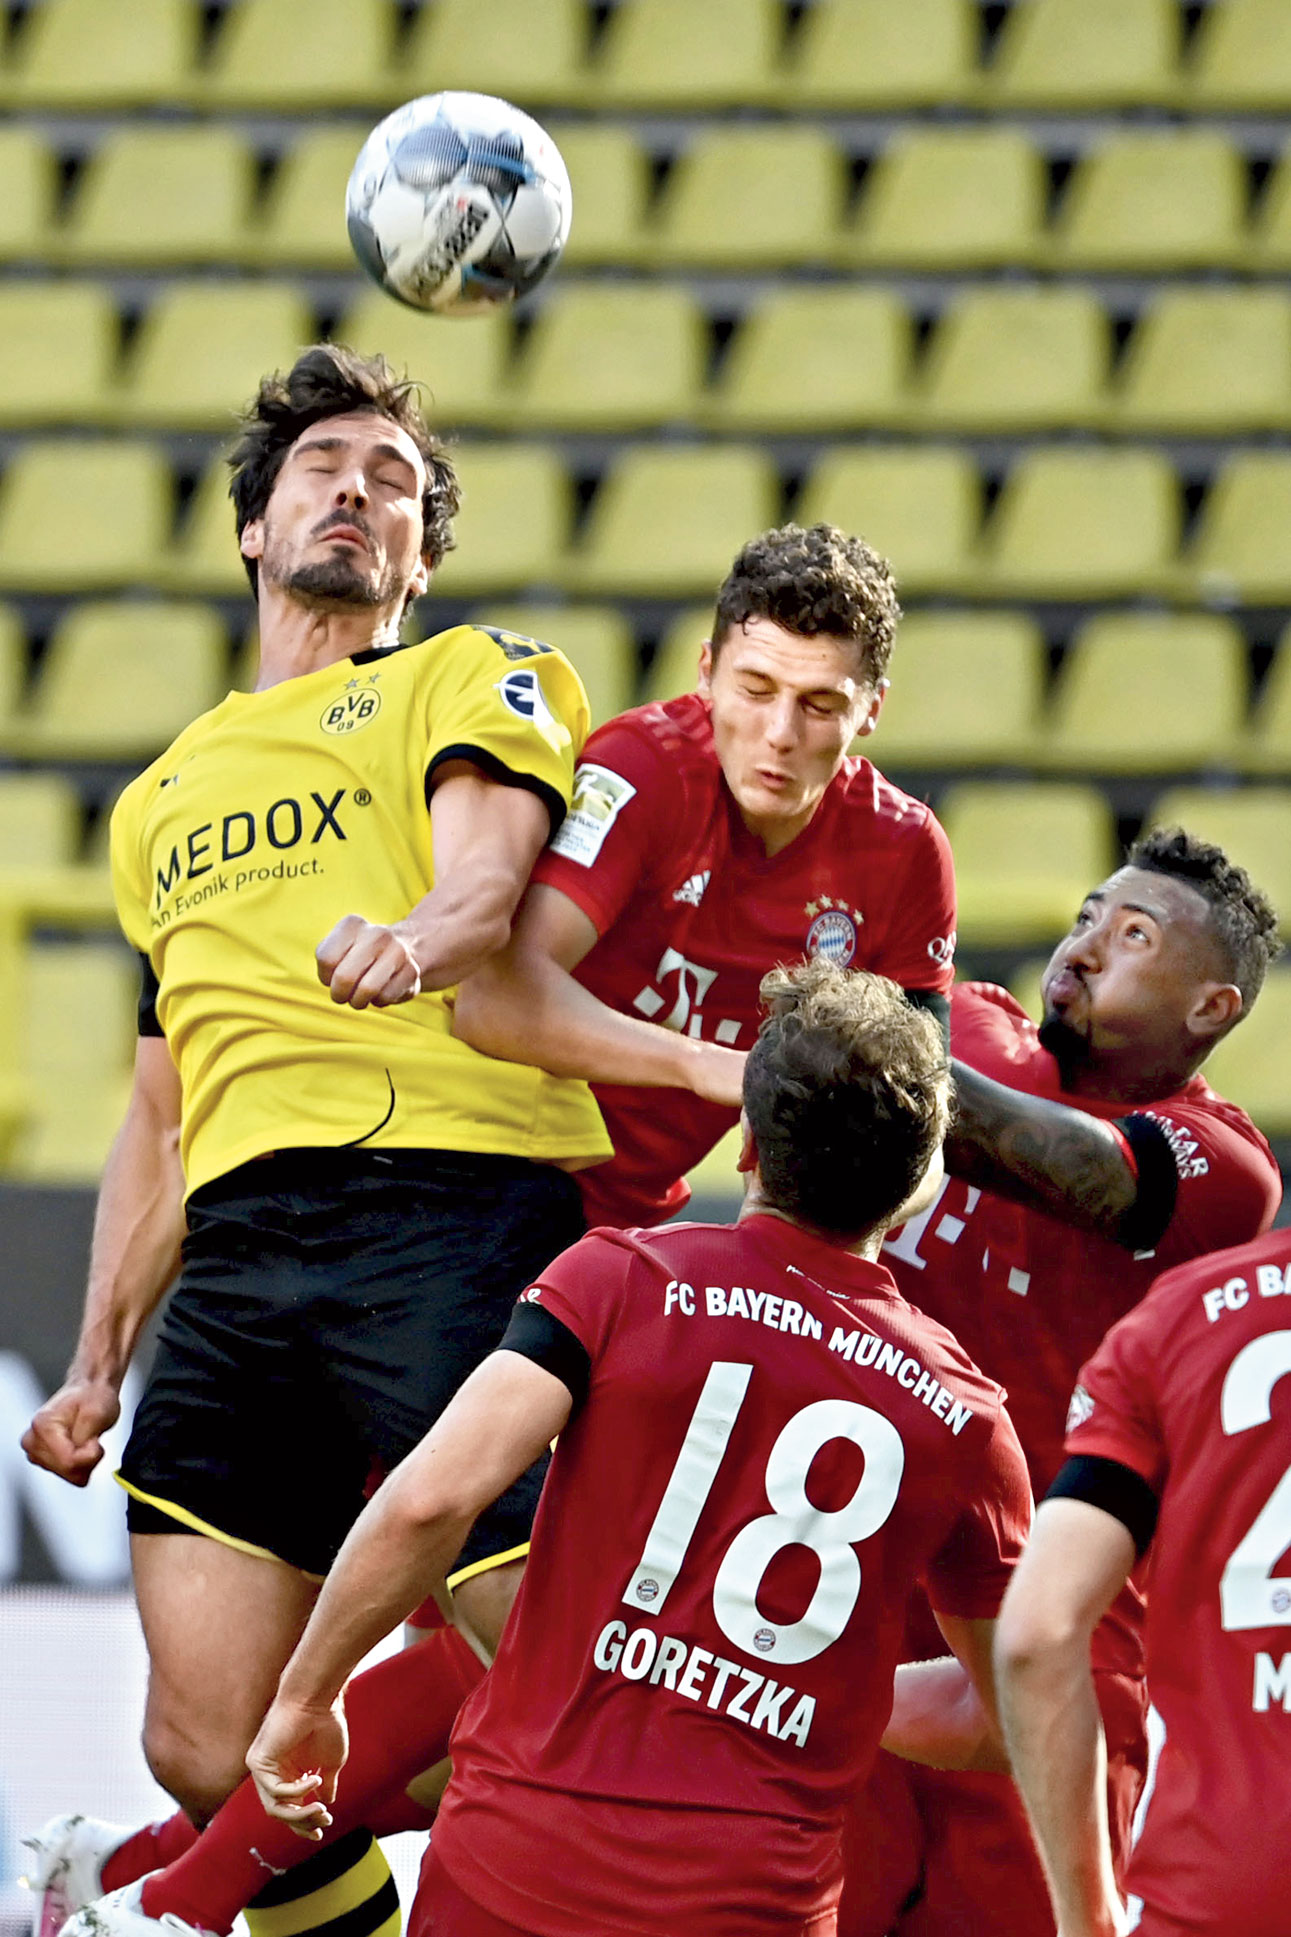 Borussia Dortmund's Mats Hummels (left) and Benjamin Pavard of Bayern Munich in an aerial tussle during a Bundesliga match in Dortmund on Tuesday.